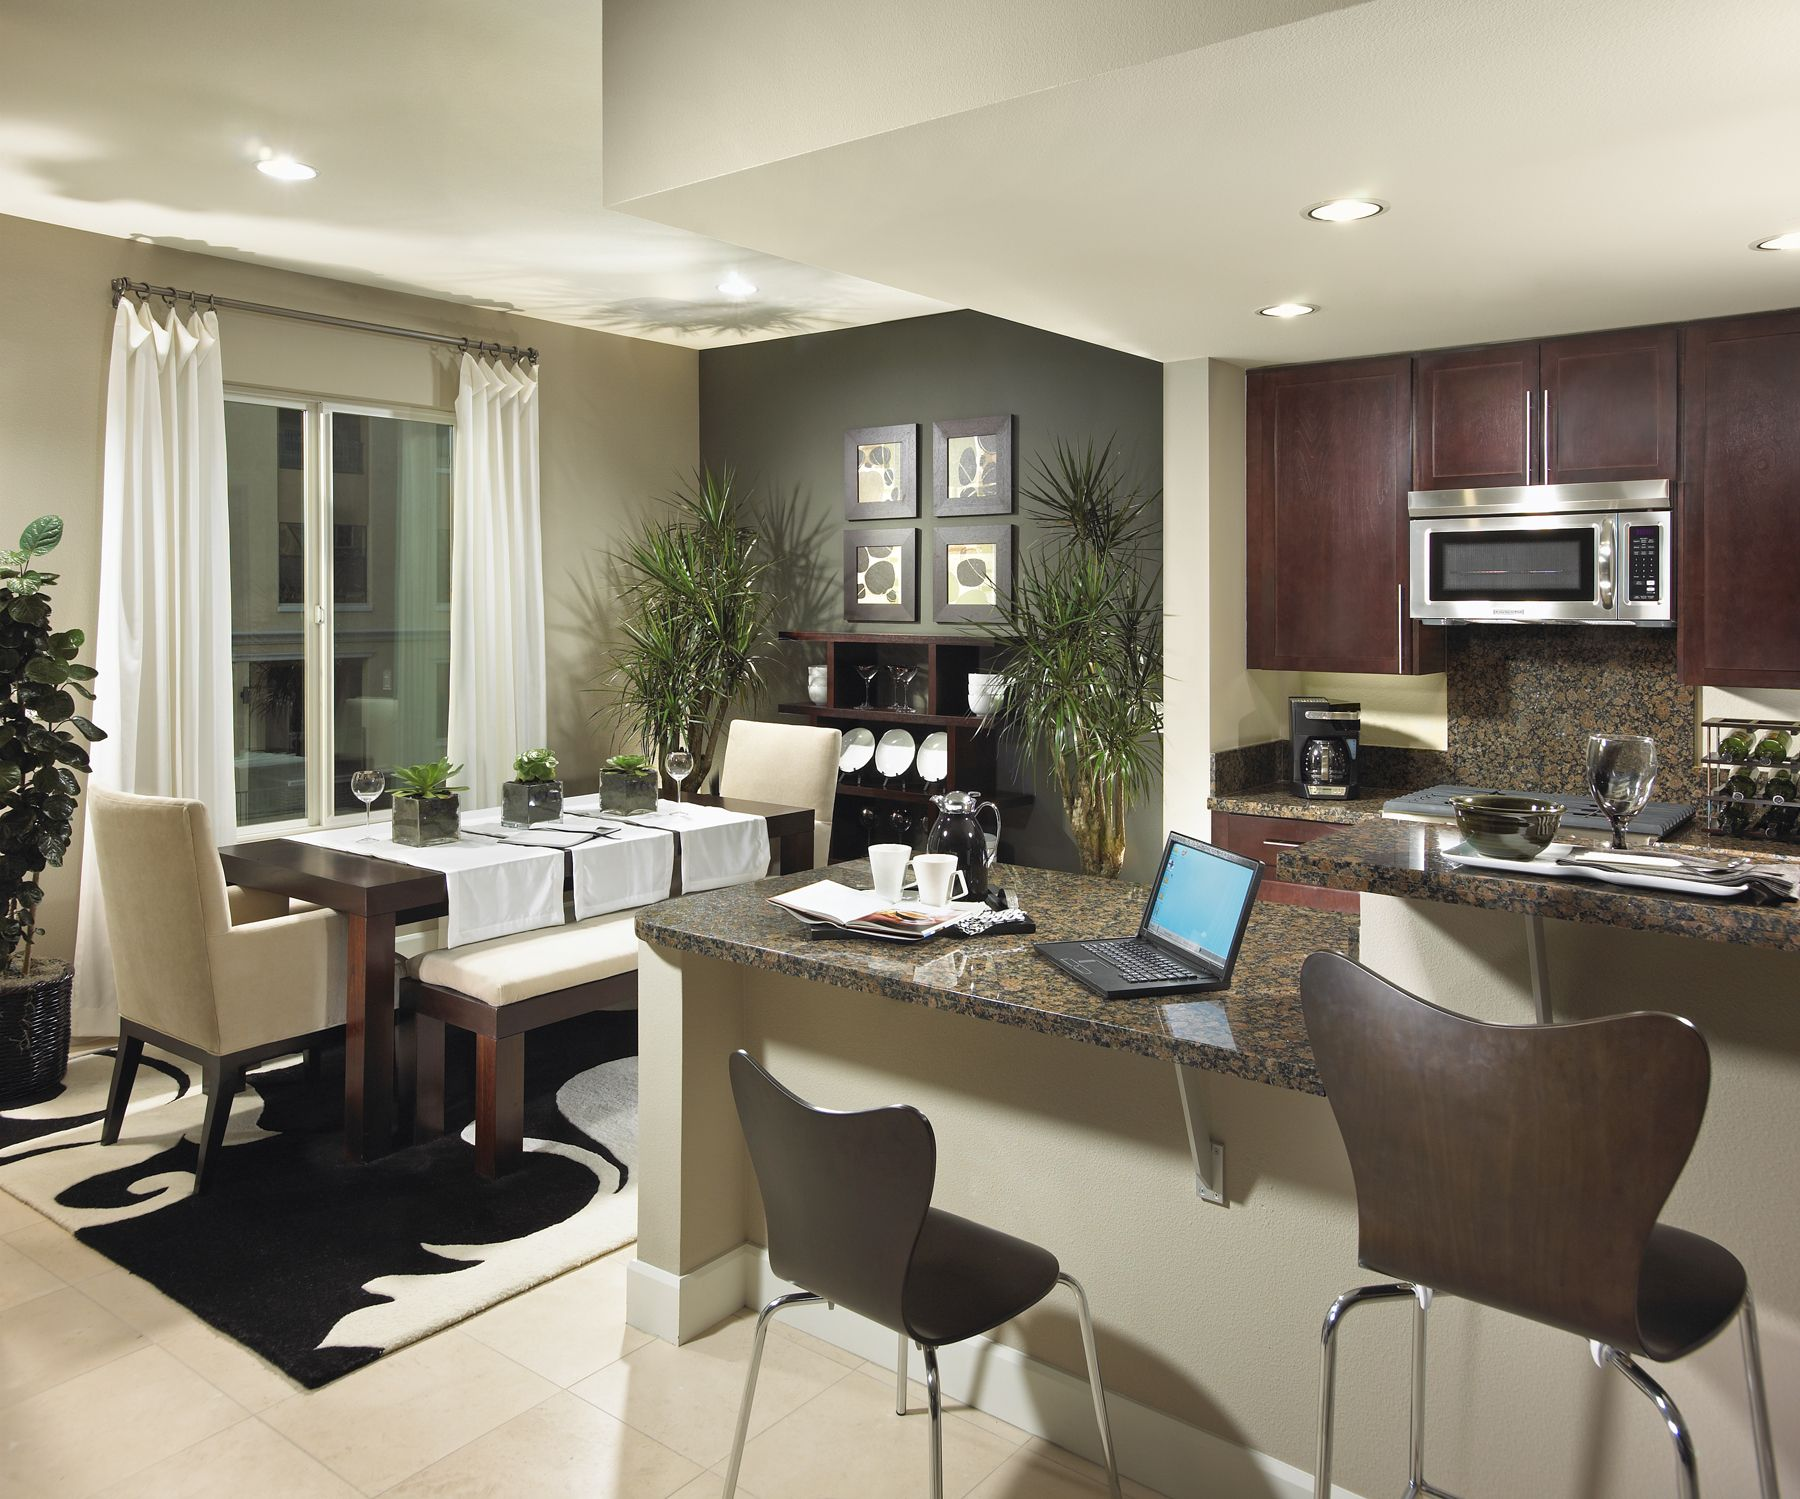 Wha Loft Design - Kitchen And Dining Room - Sustainable